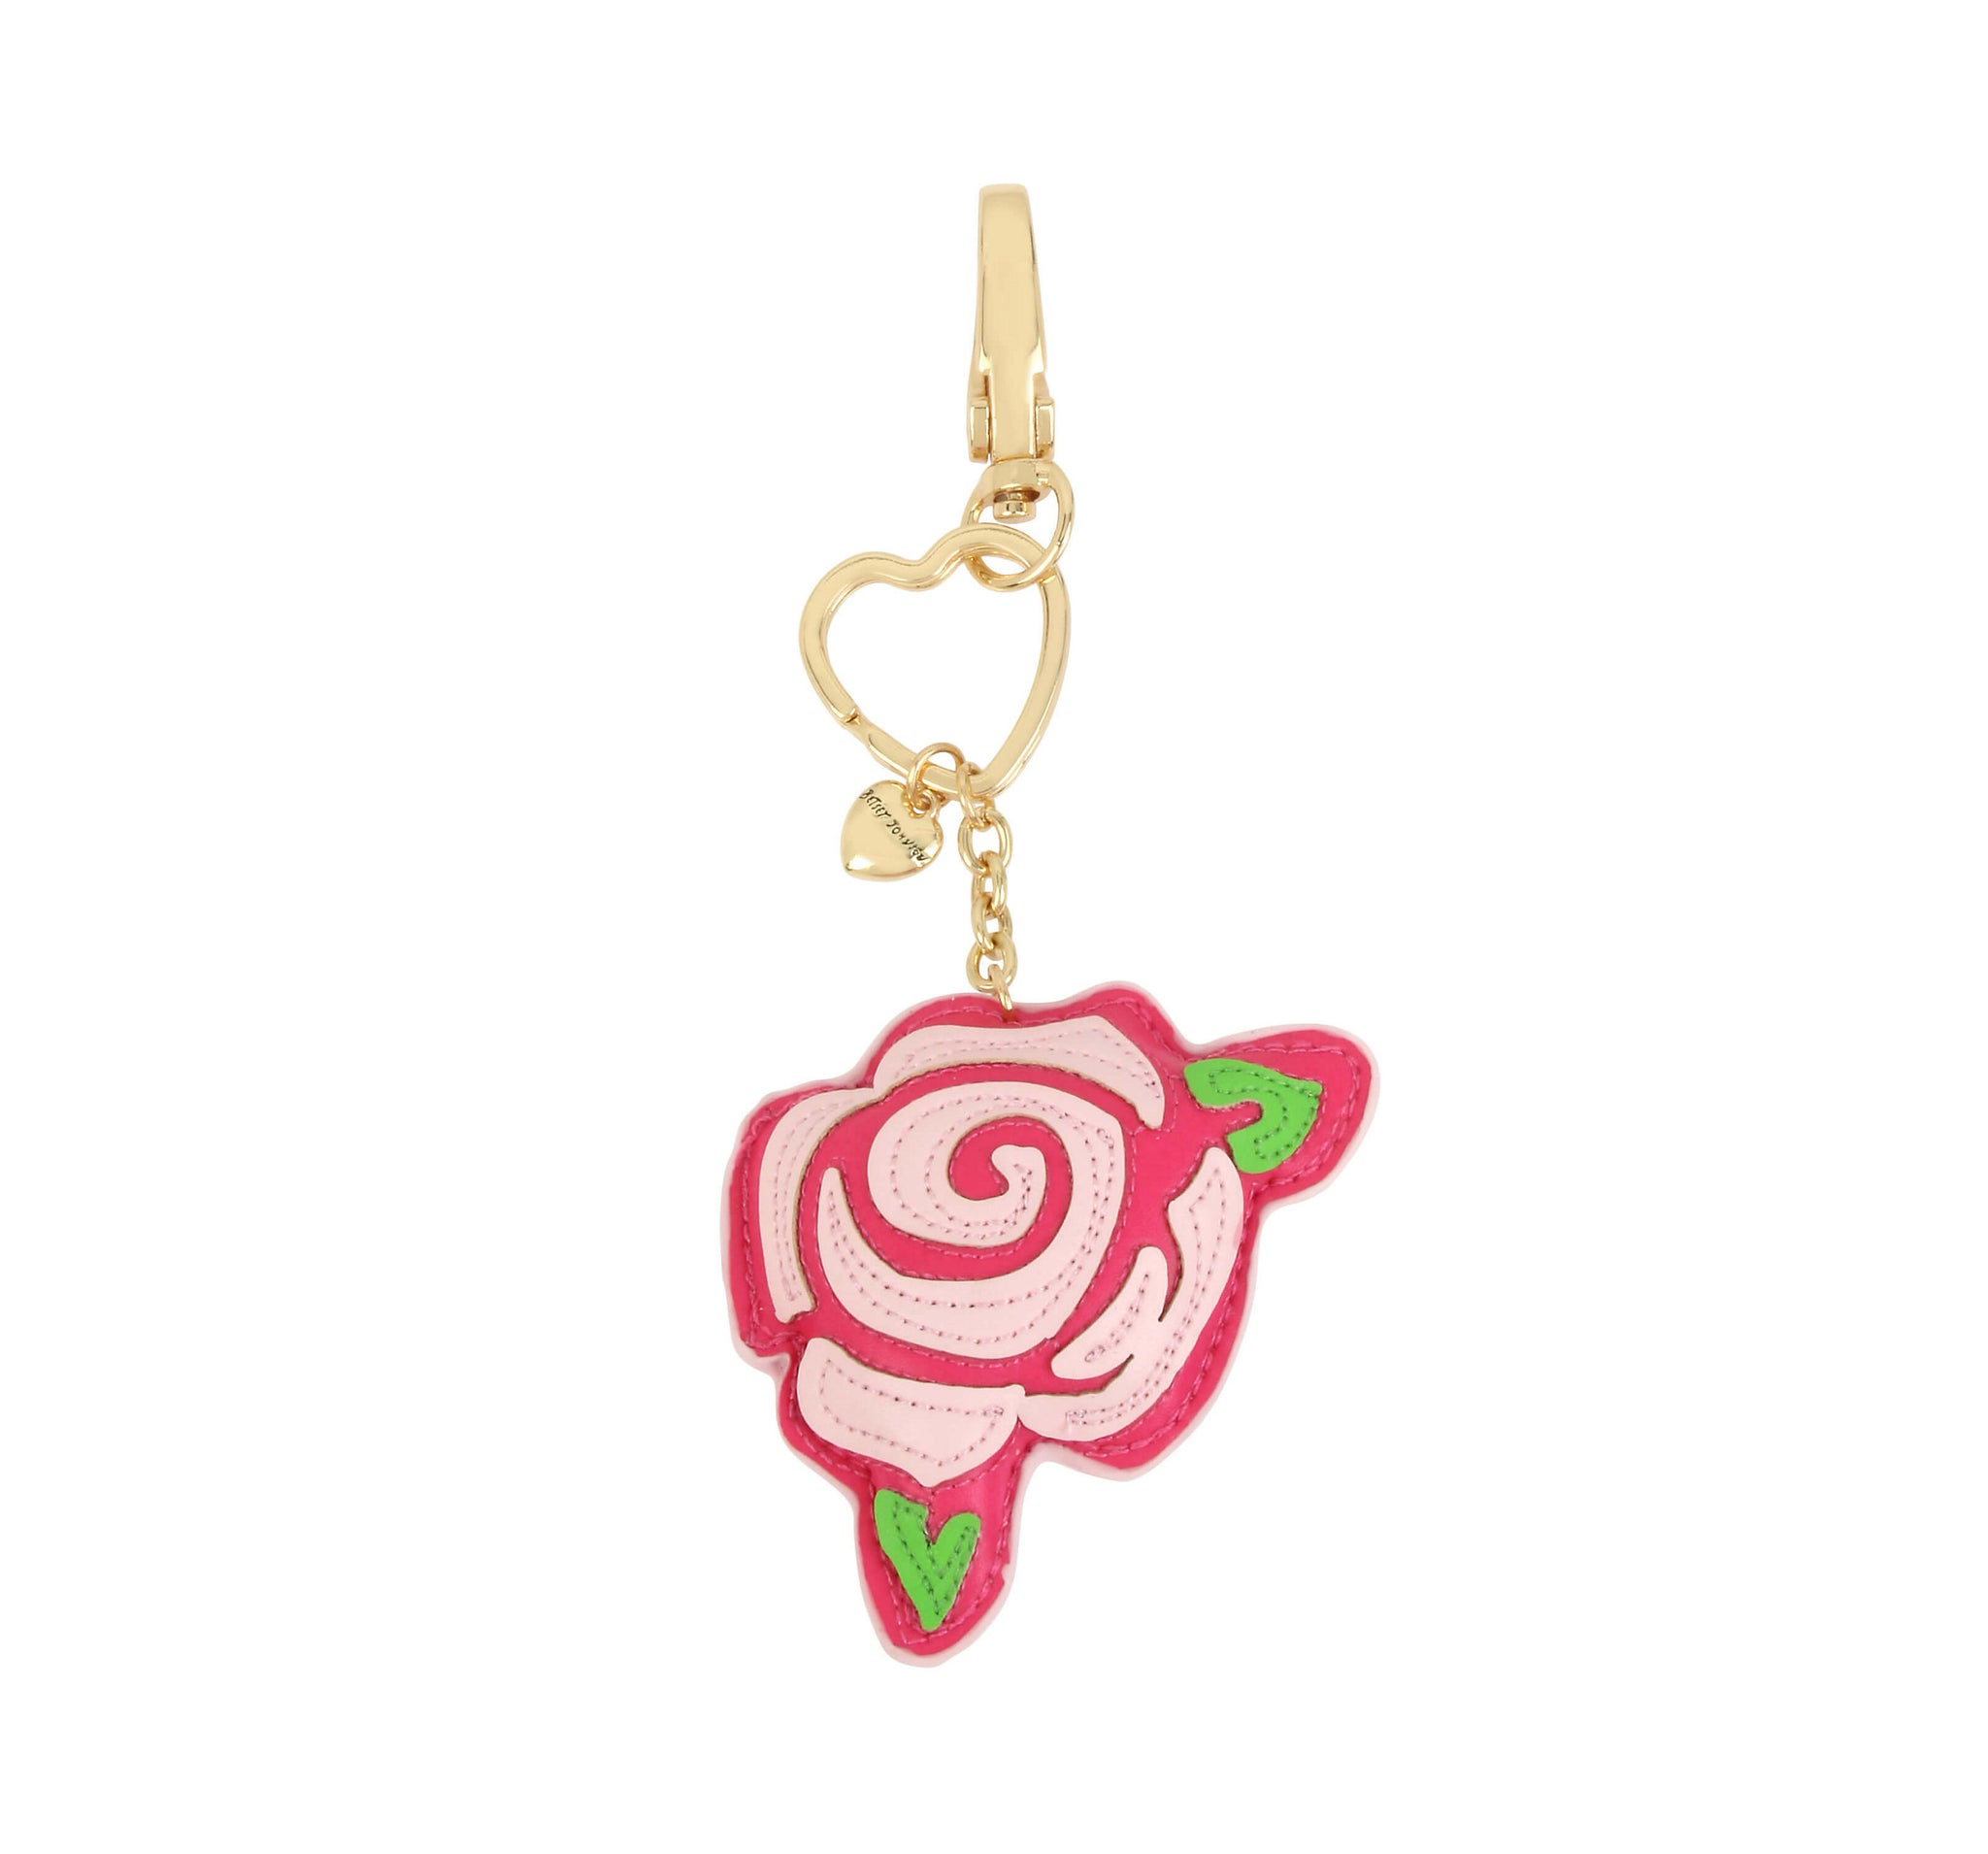 2e454a6a753b6 HOLIDAY 2018 WHITE ROSE KEYCHAIN PINK - ACCESSORIES - Betsey Johnson ...